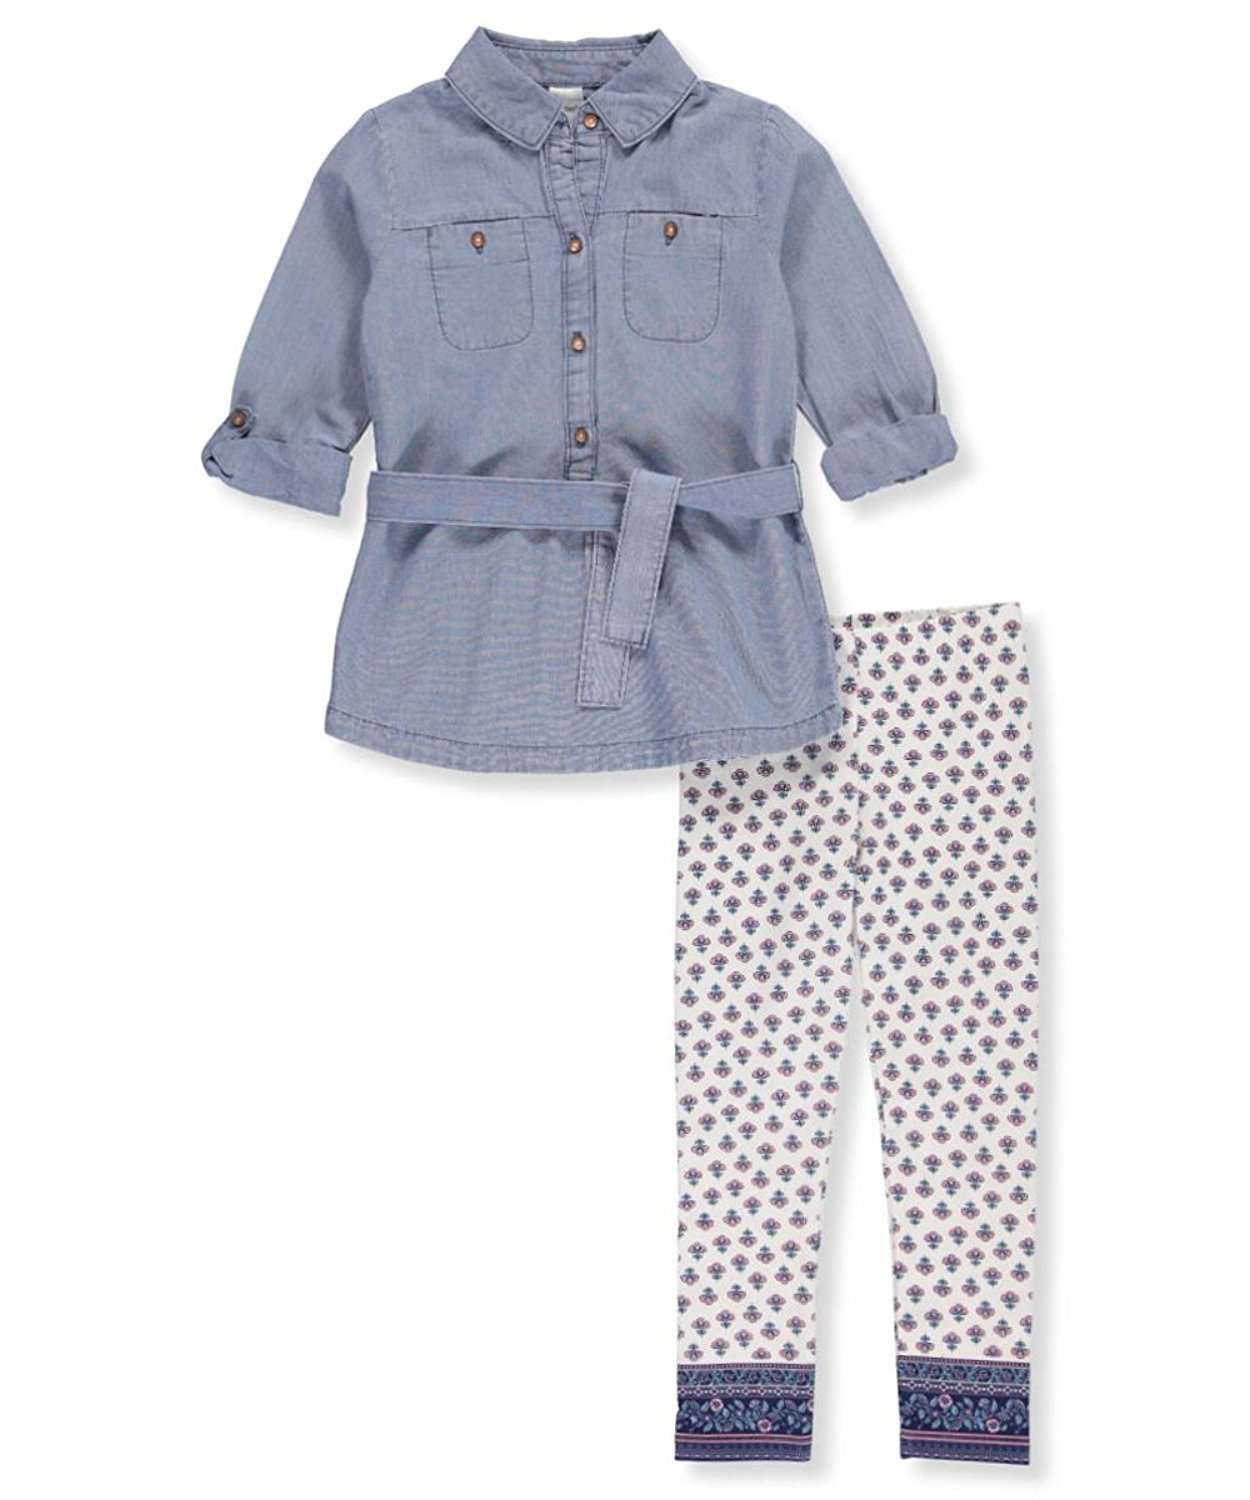 a70940b395 Get Quotations · Carter s Girls  4-8 2 Piece Chambray Tunic and Leggings Set